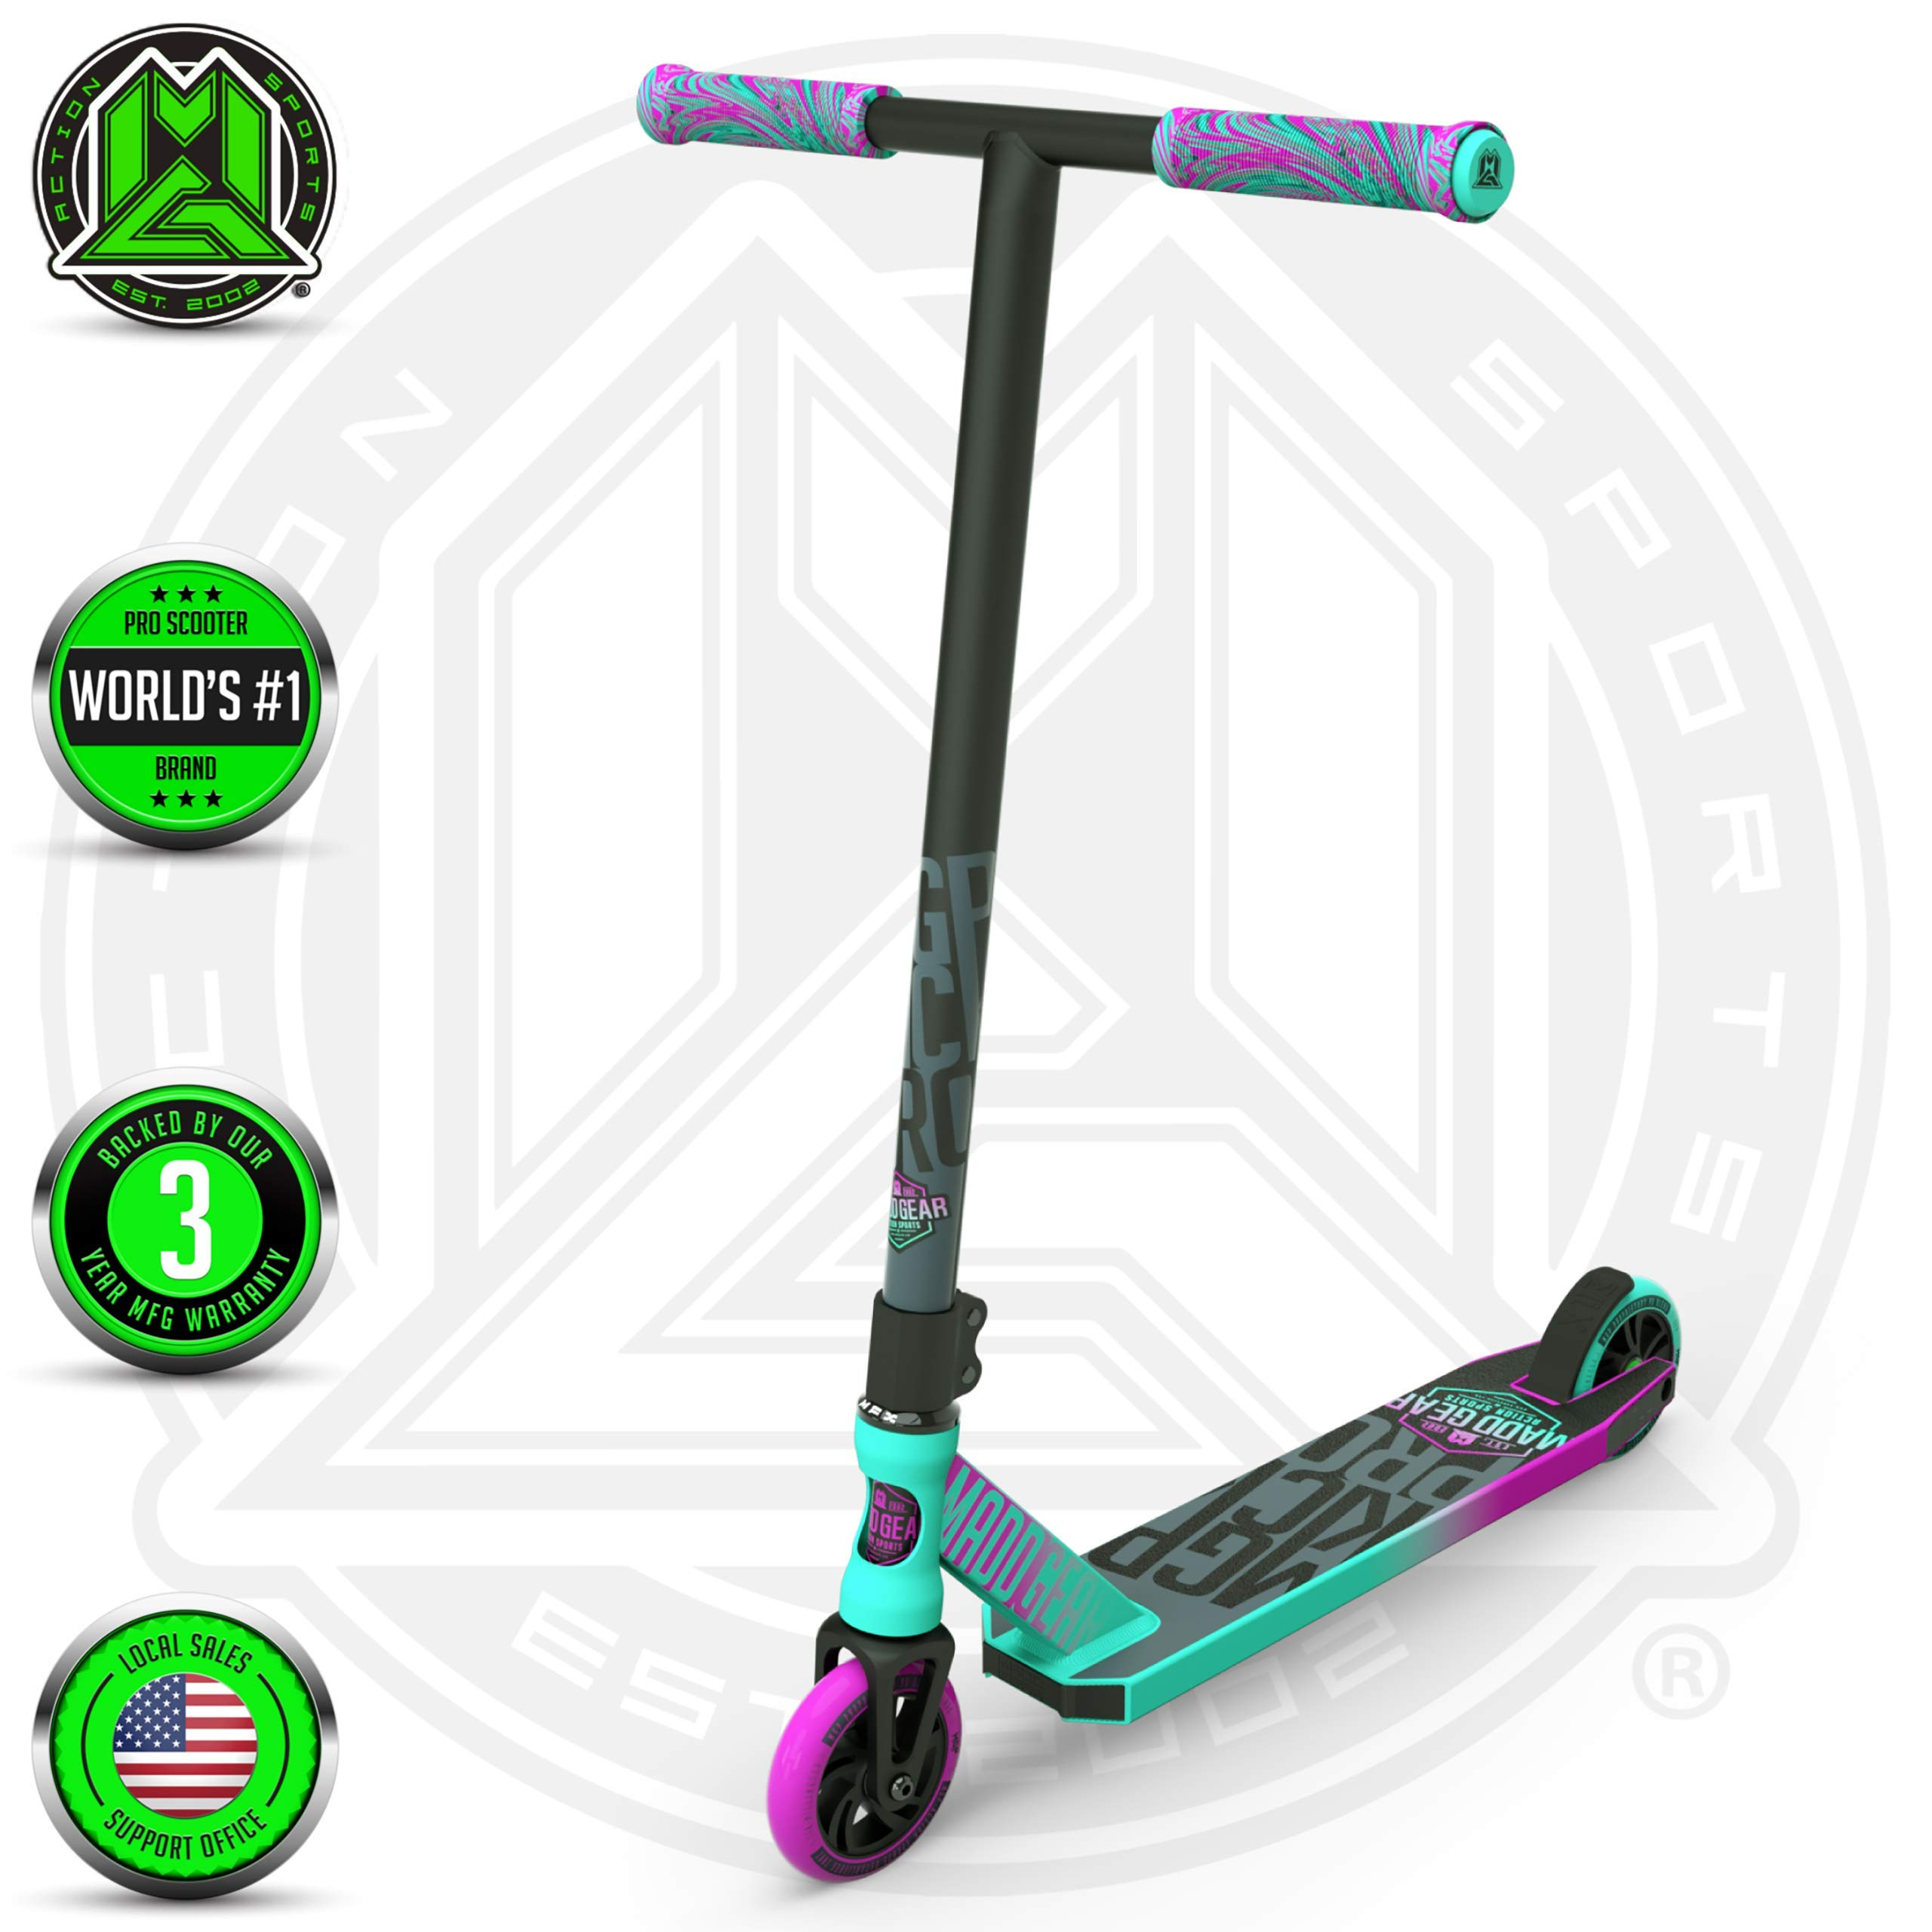 Madd Gear MGP Action Sports Kick Pro Scooter (Teal/Pink 2019) by Madd Gear